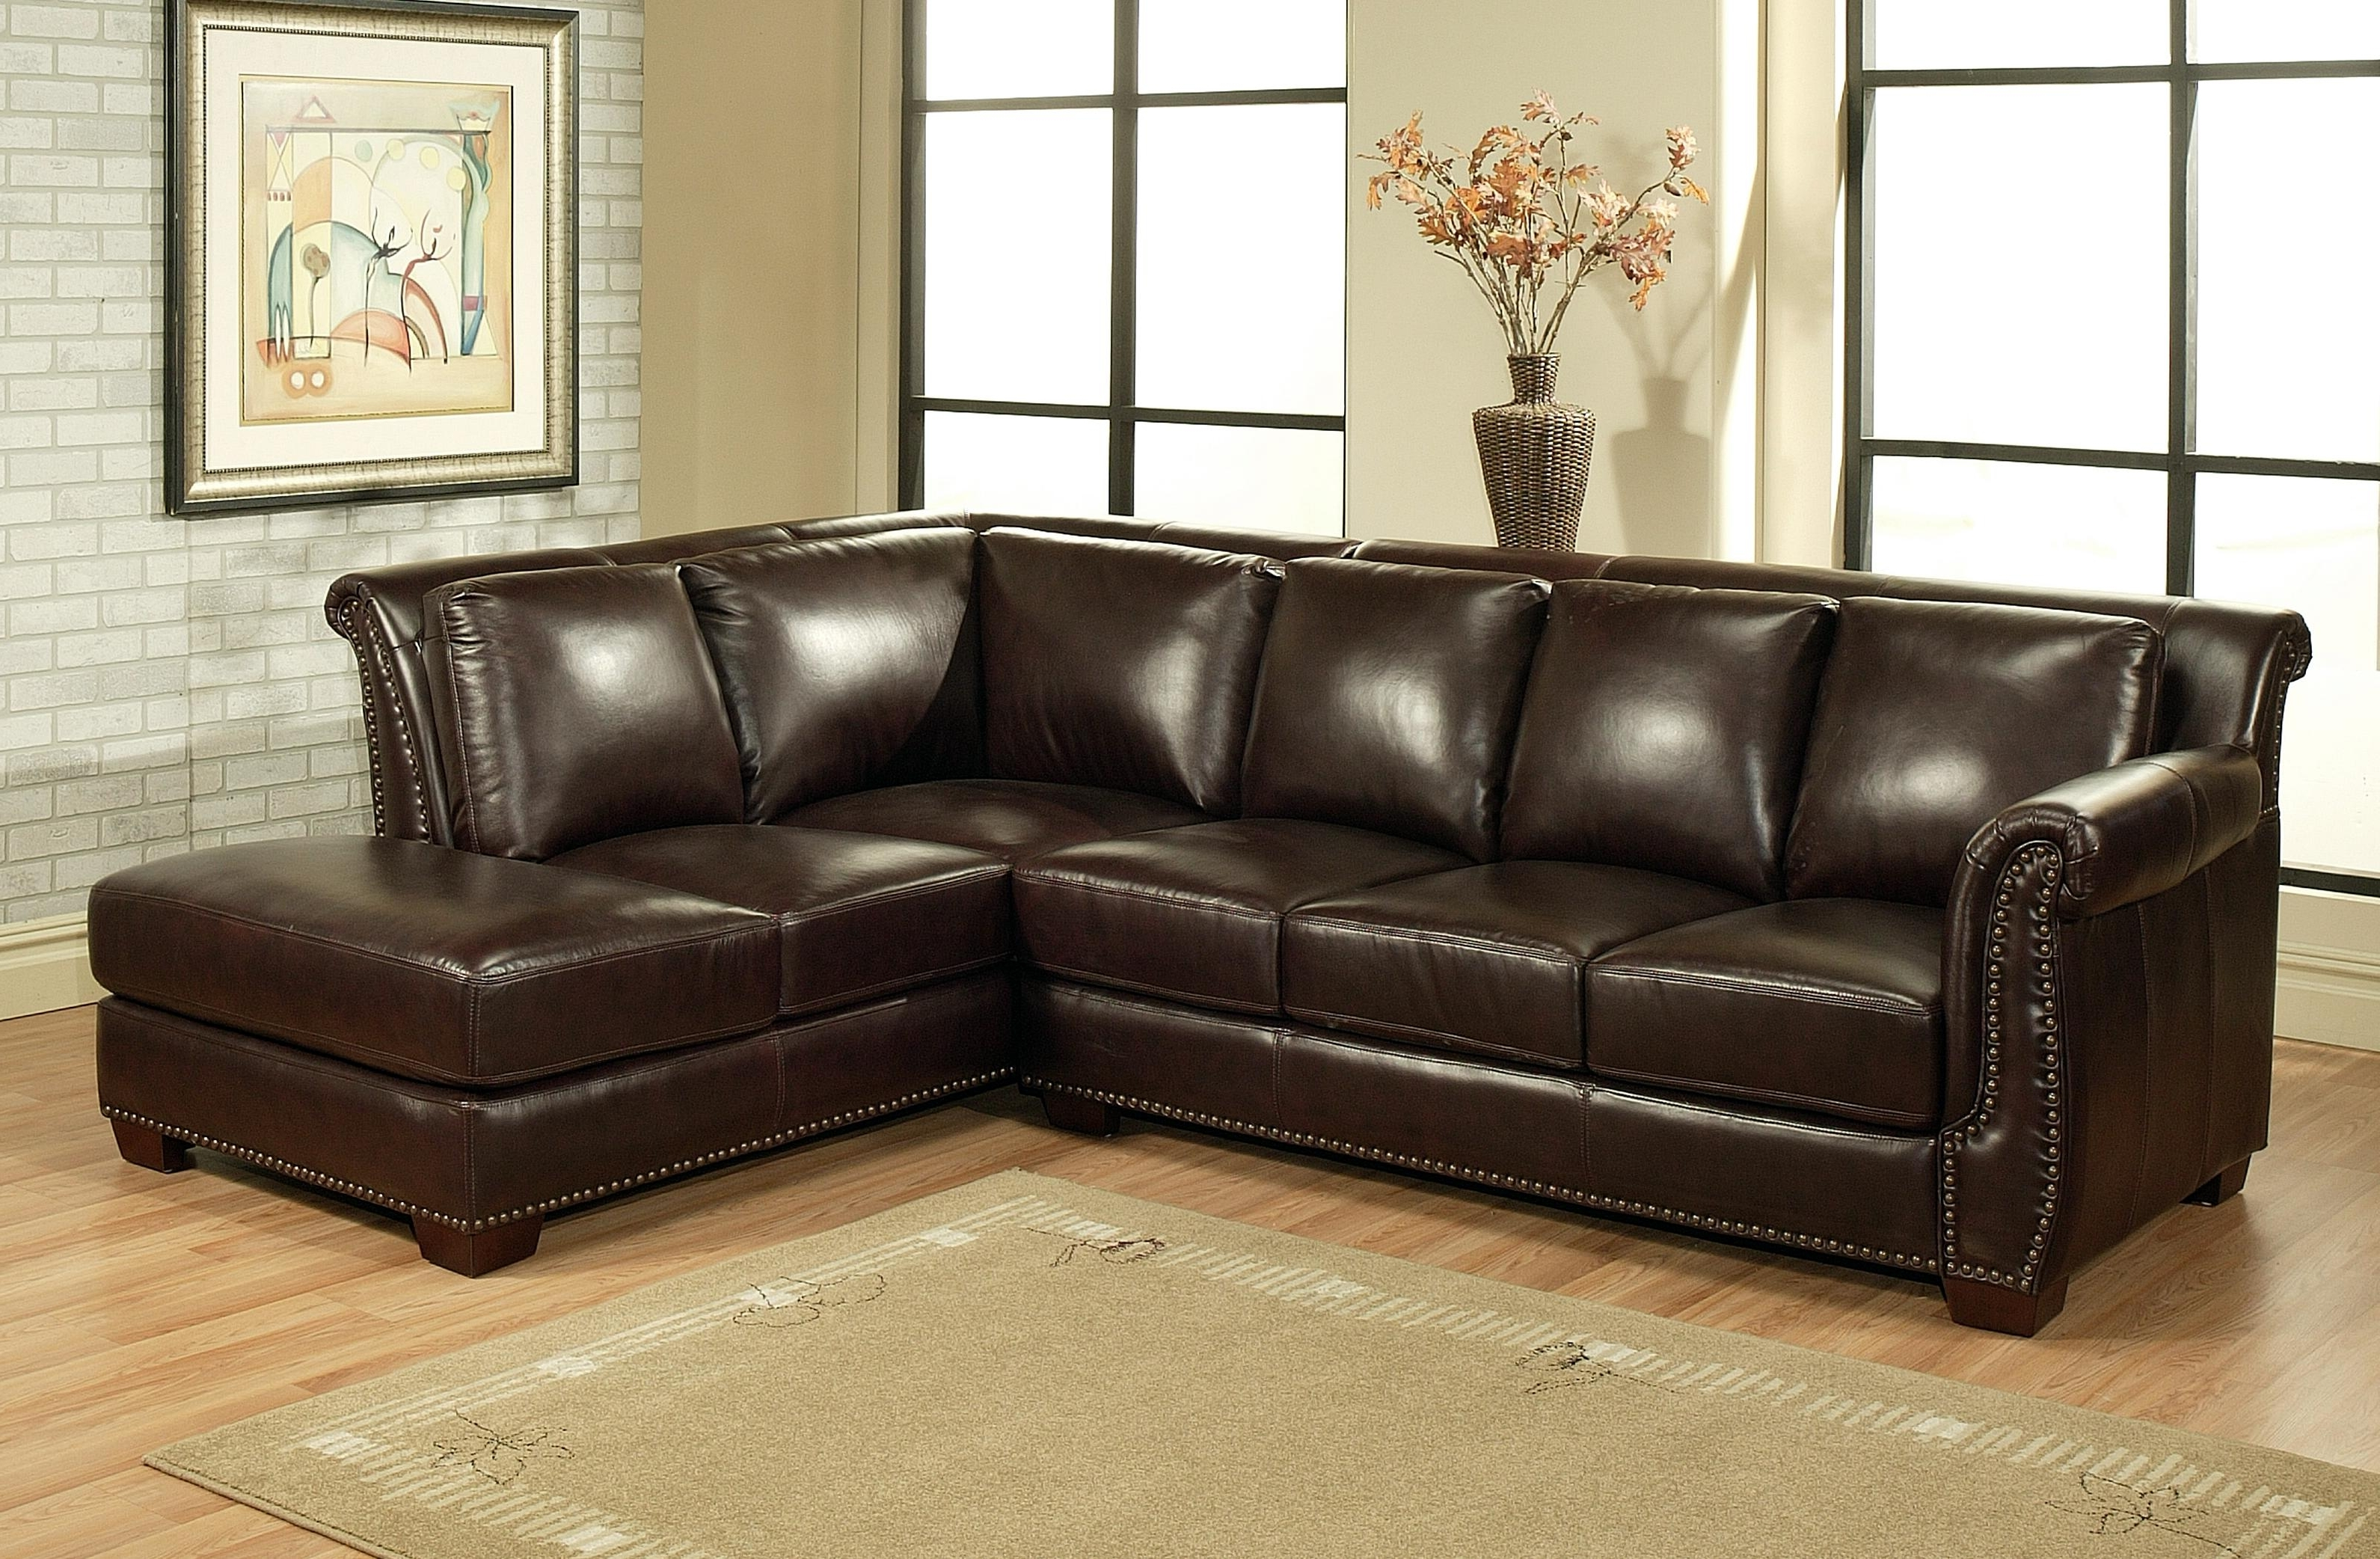 Well Liked Genuine Leather Sectionals With Chaise For Ikea Ektorp Sectional Sectional Couch Ikea Sectionals Sofas White (View 15 of 15)